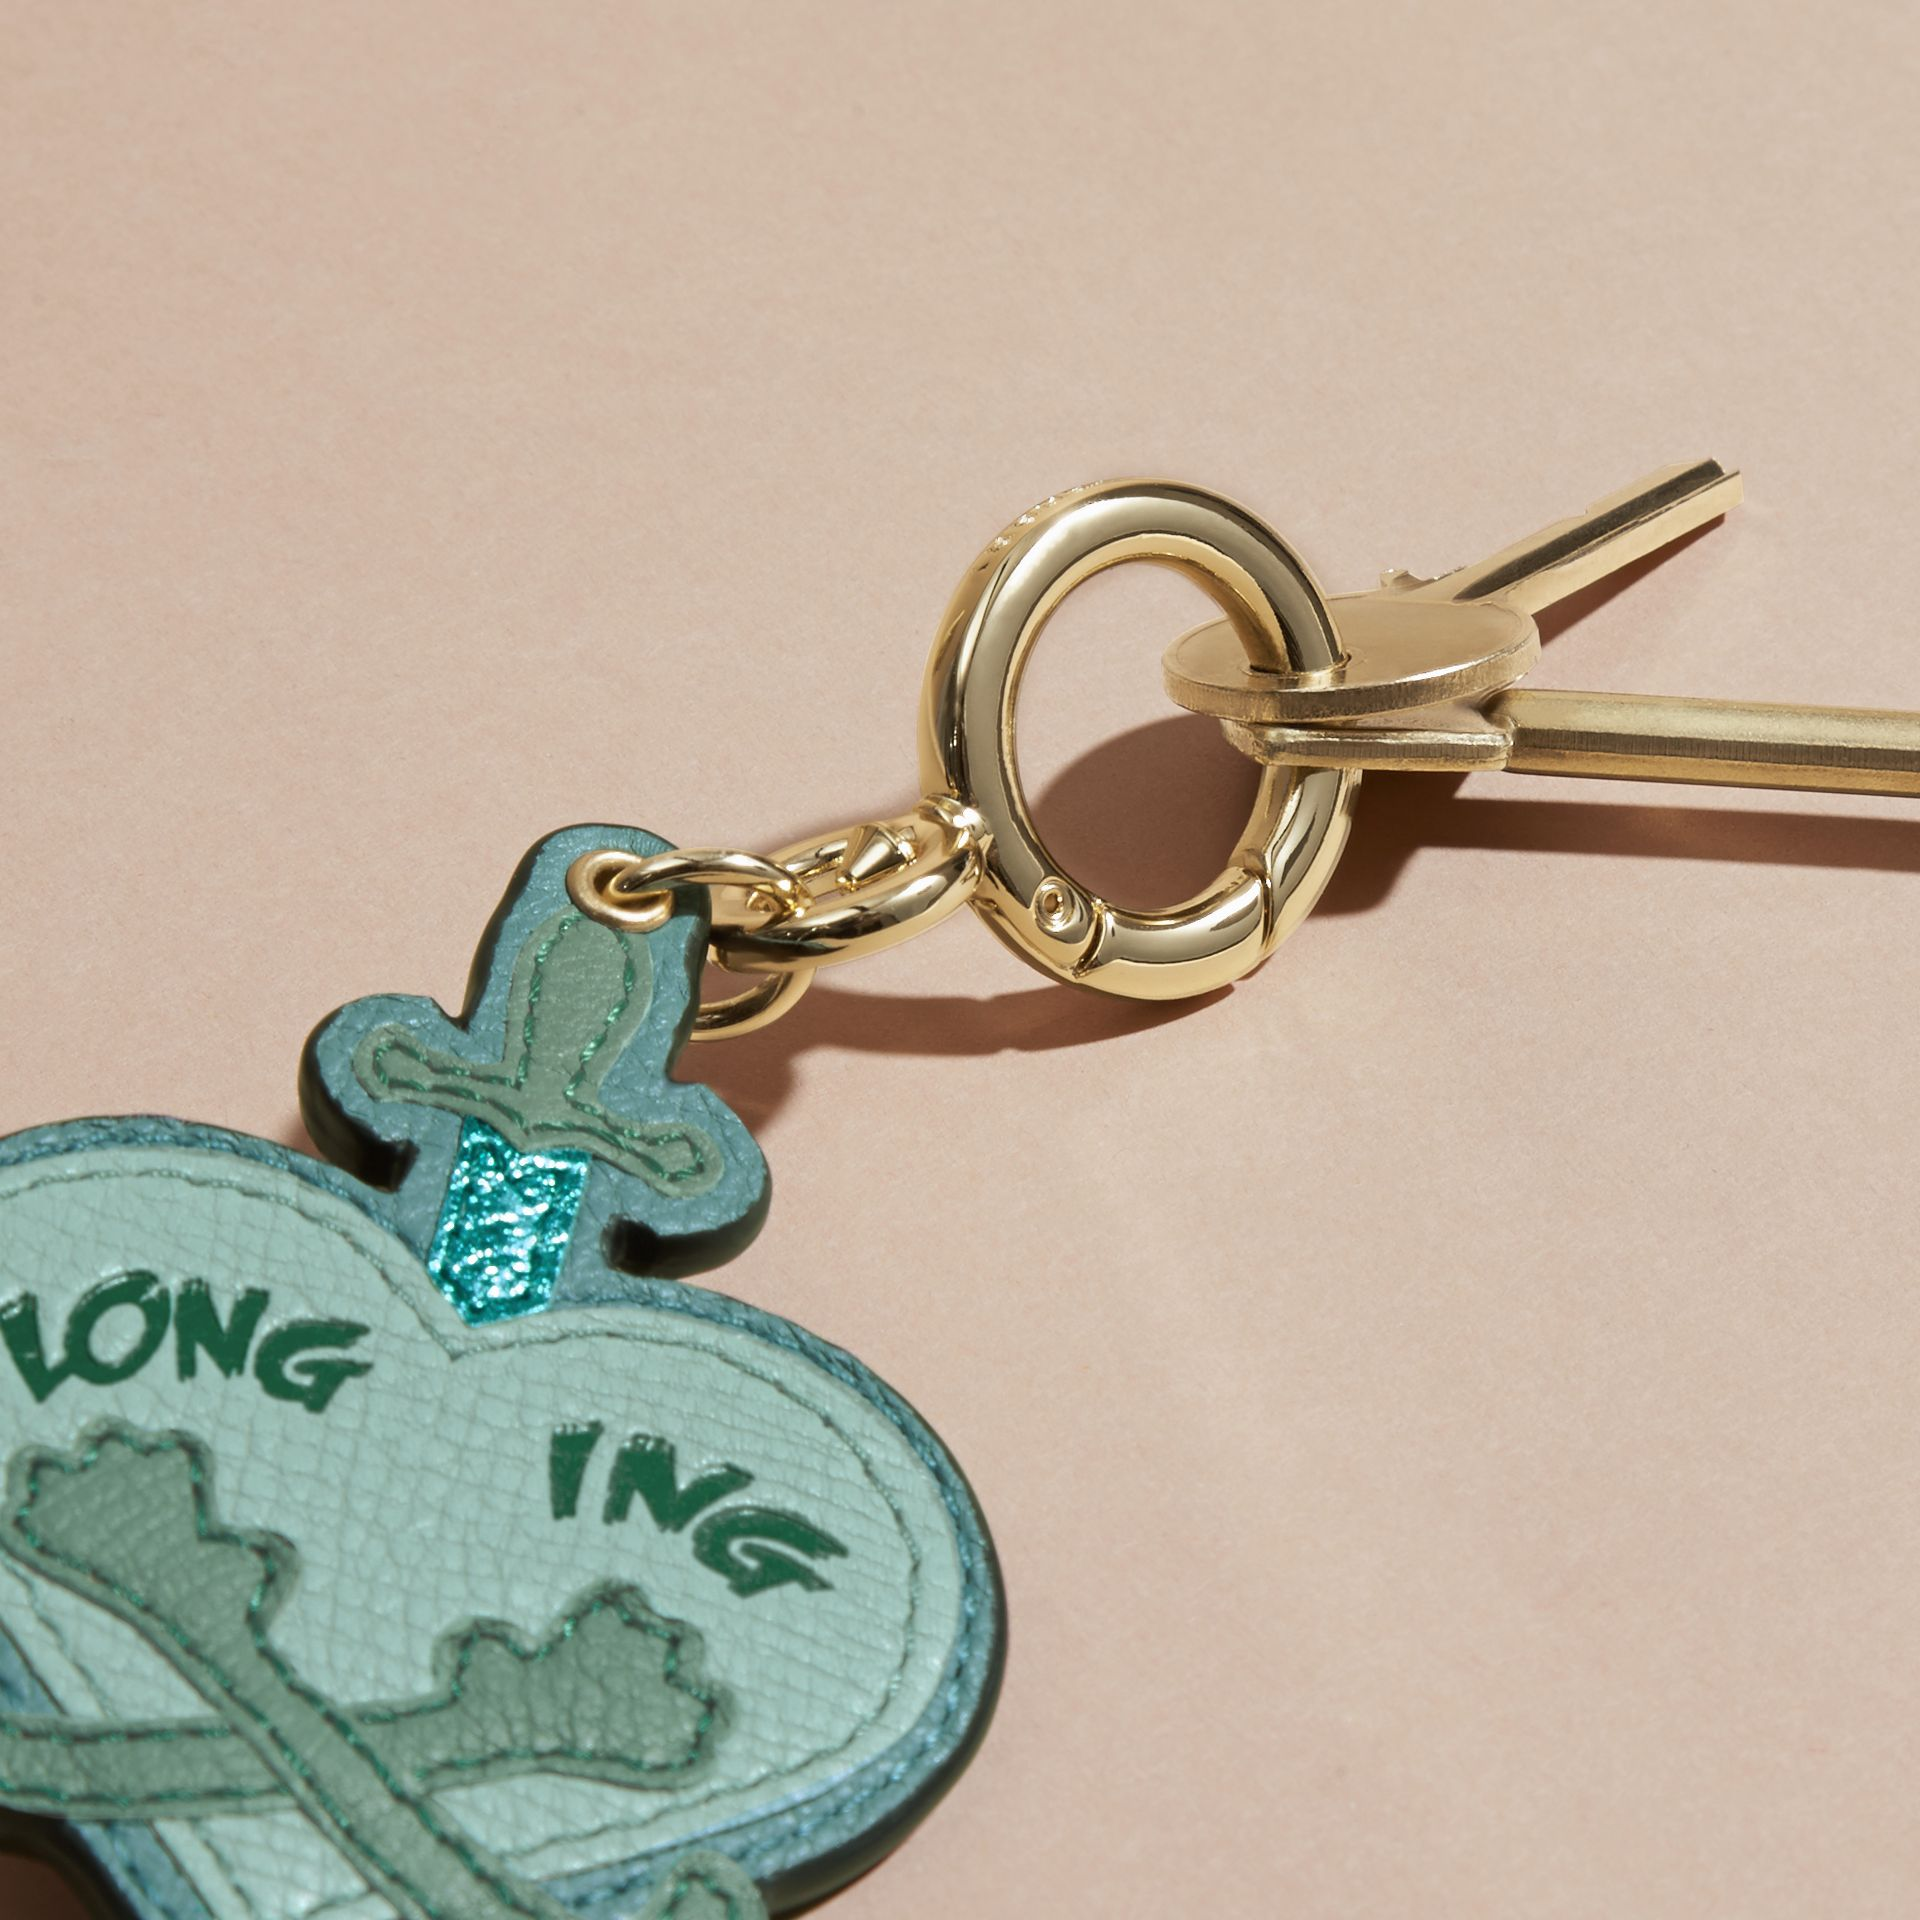 Longing Motif Leather Key Charm - gallery image 3